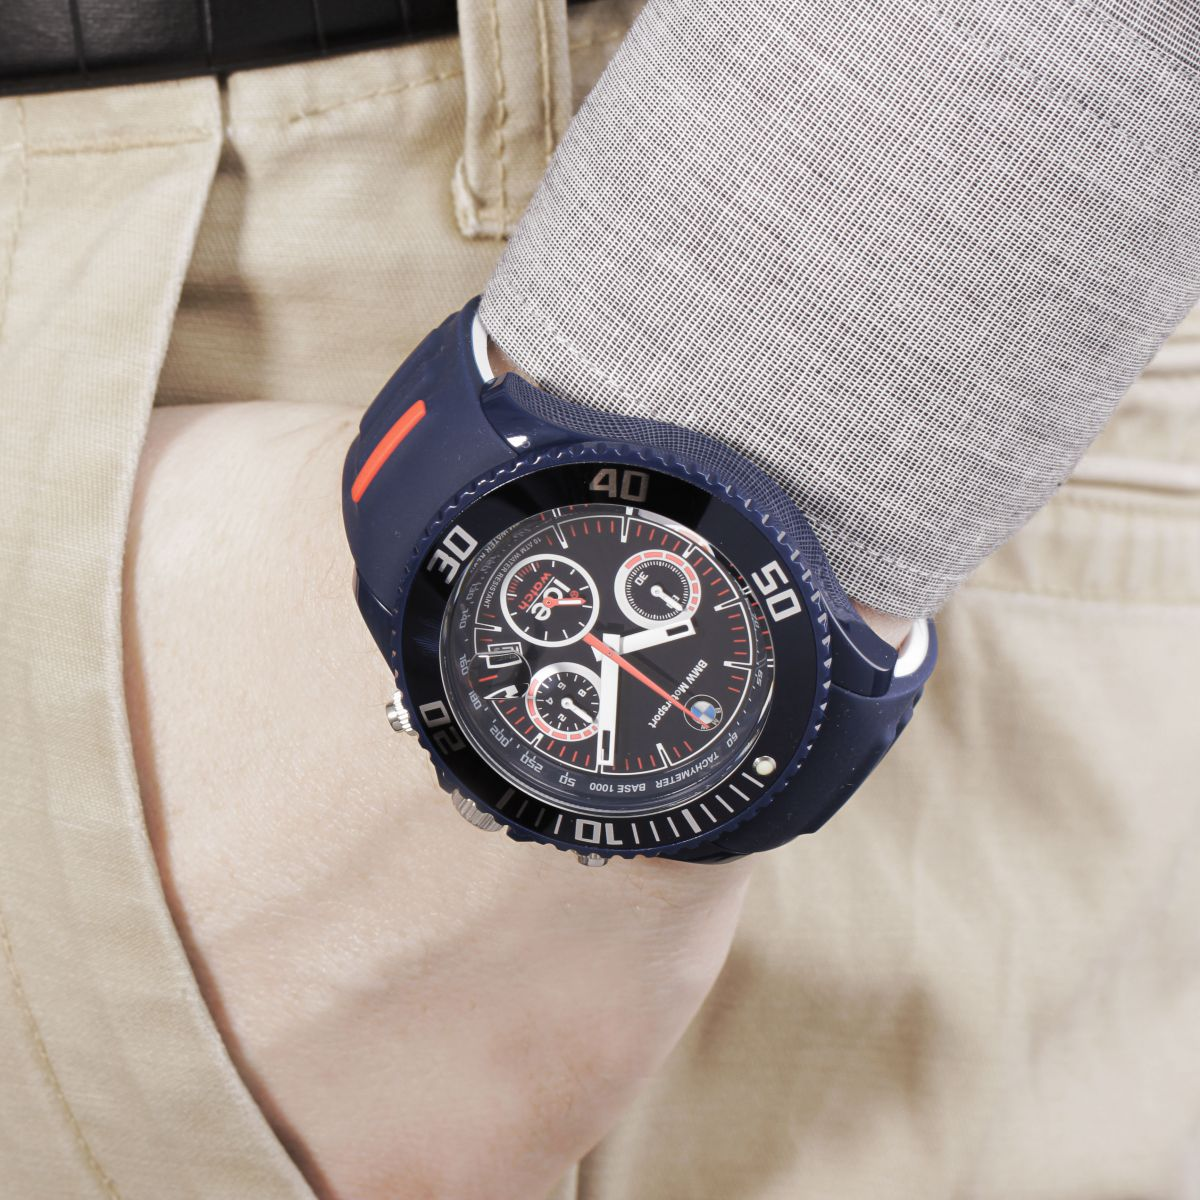 novel here bmw ball a company heres from credit can s its image partnership watch make how watches home